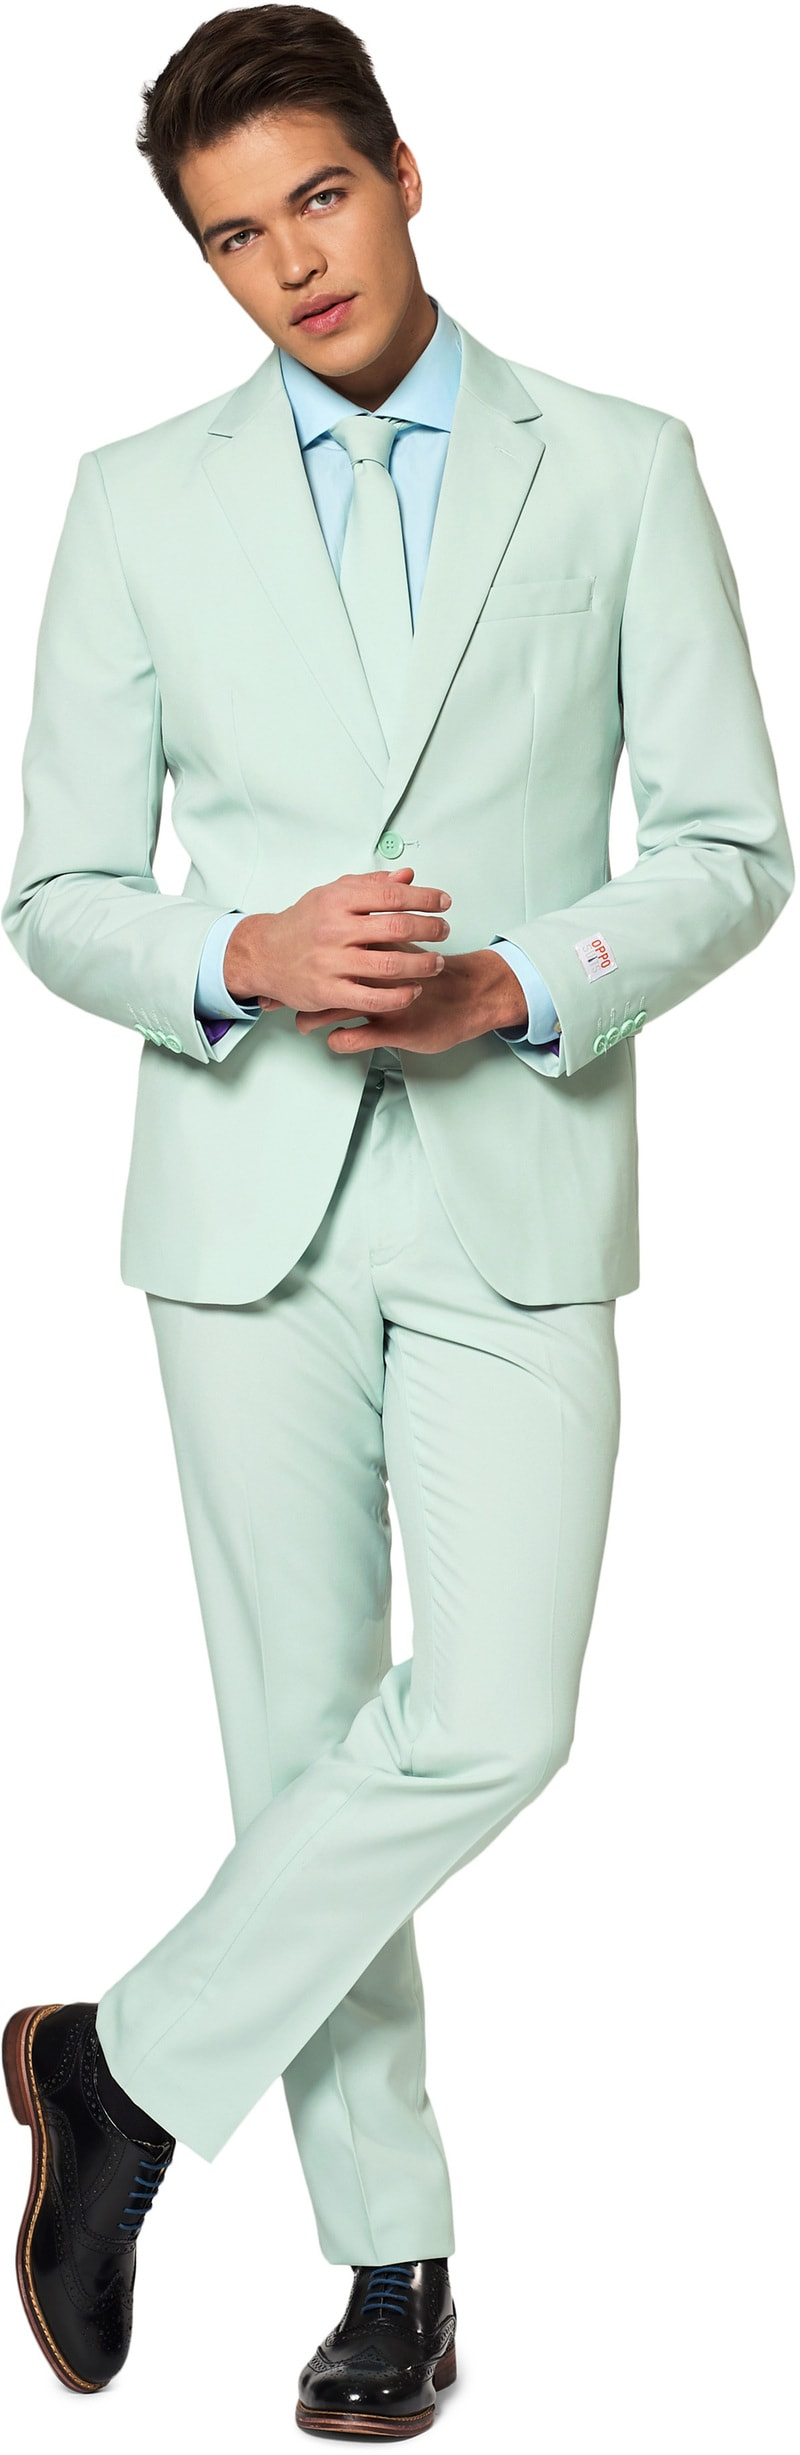 OppoSuits Magic Mint Suit photo 0